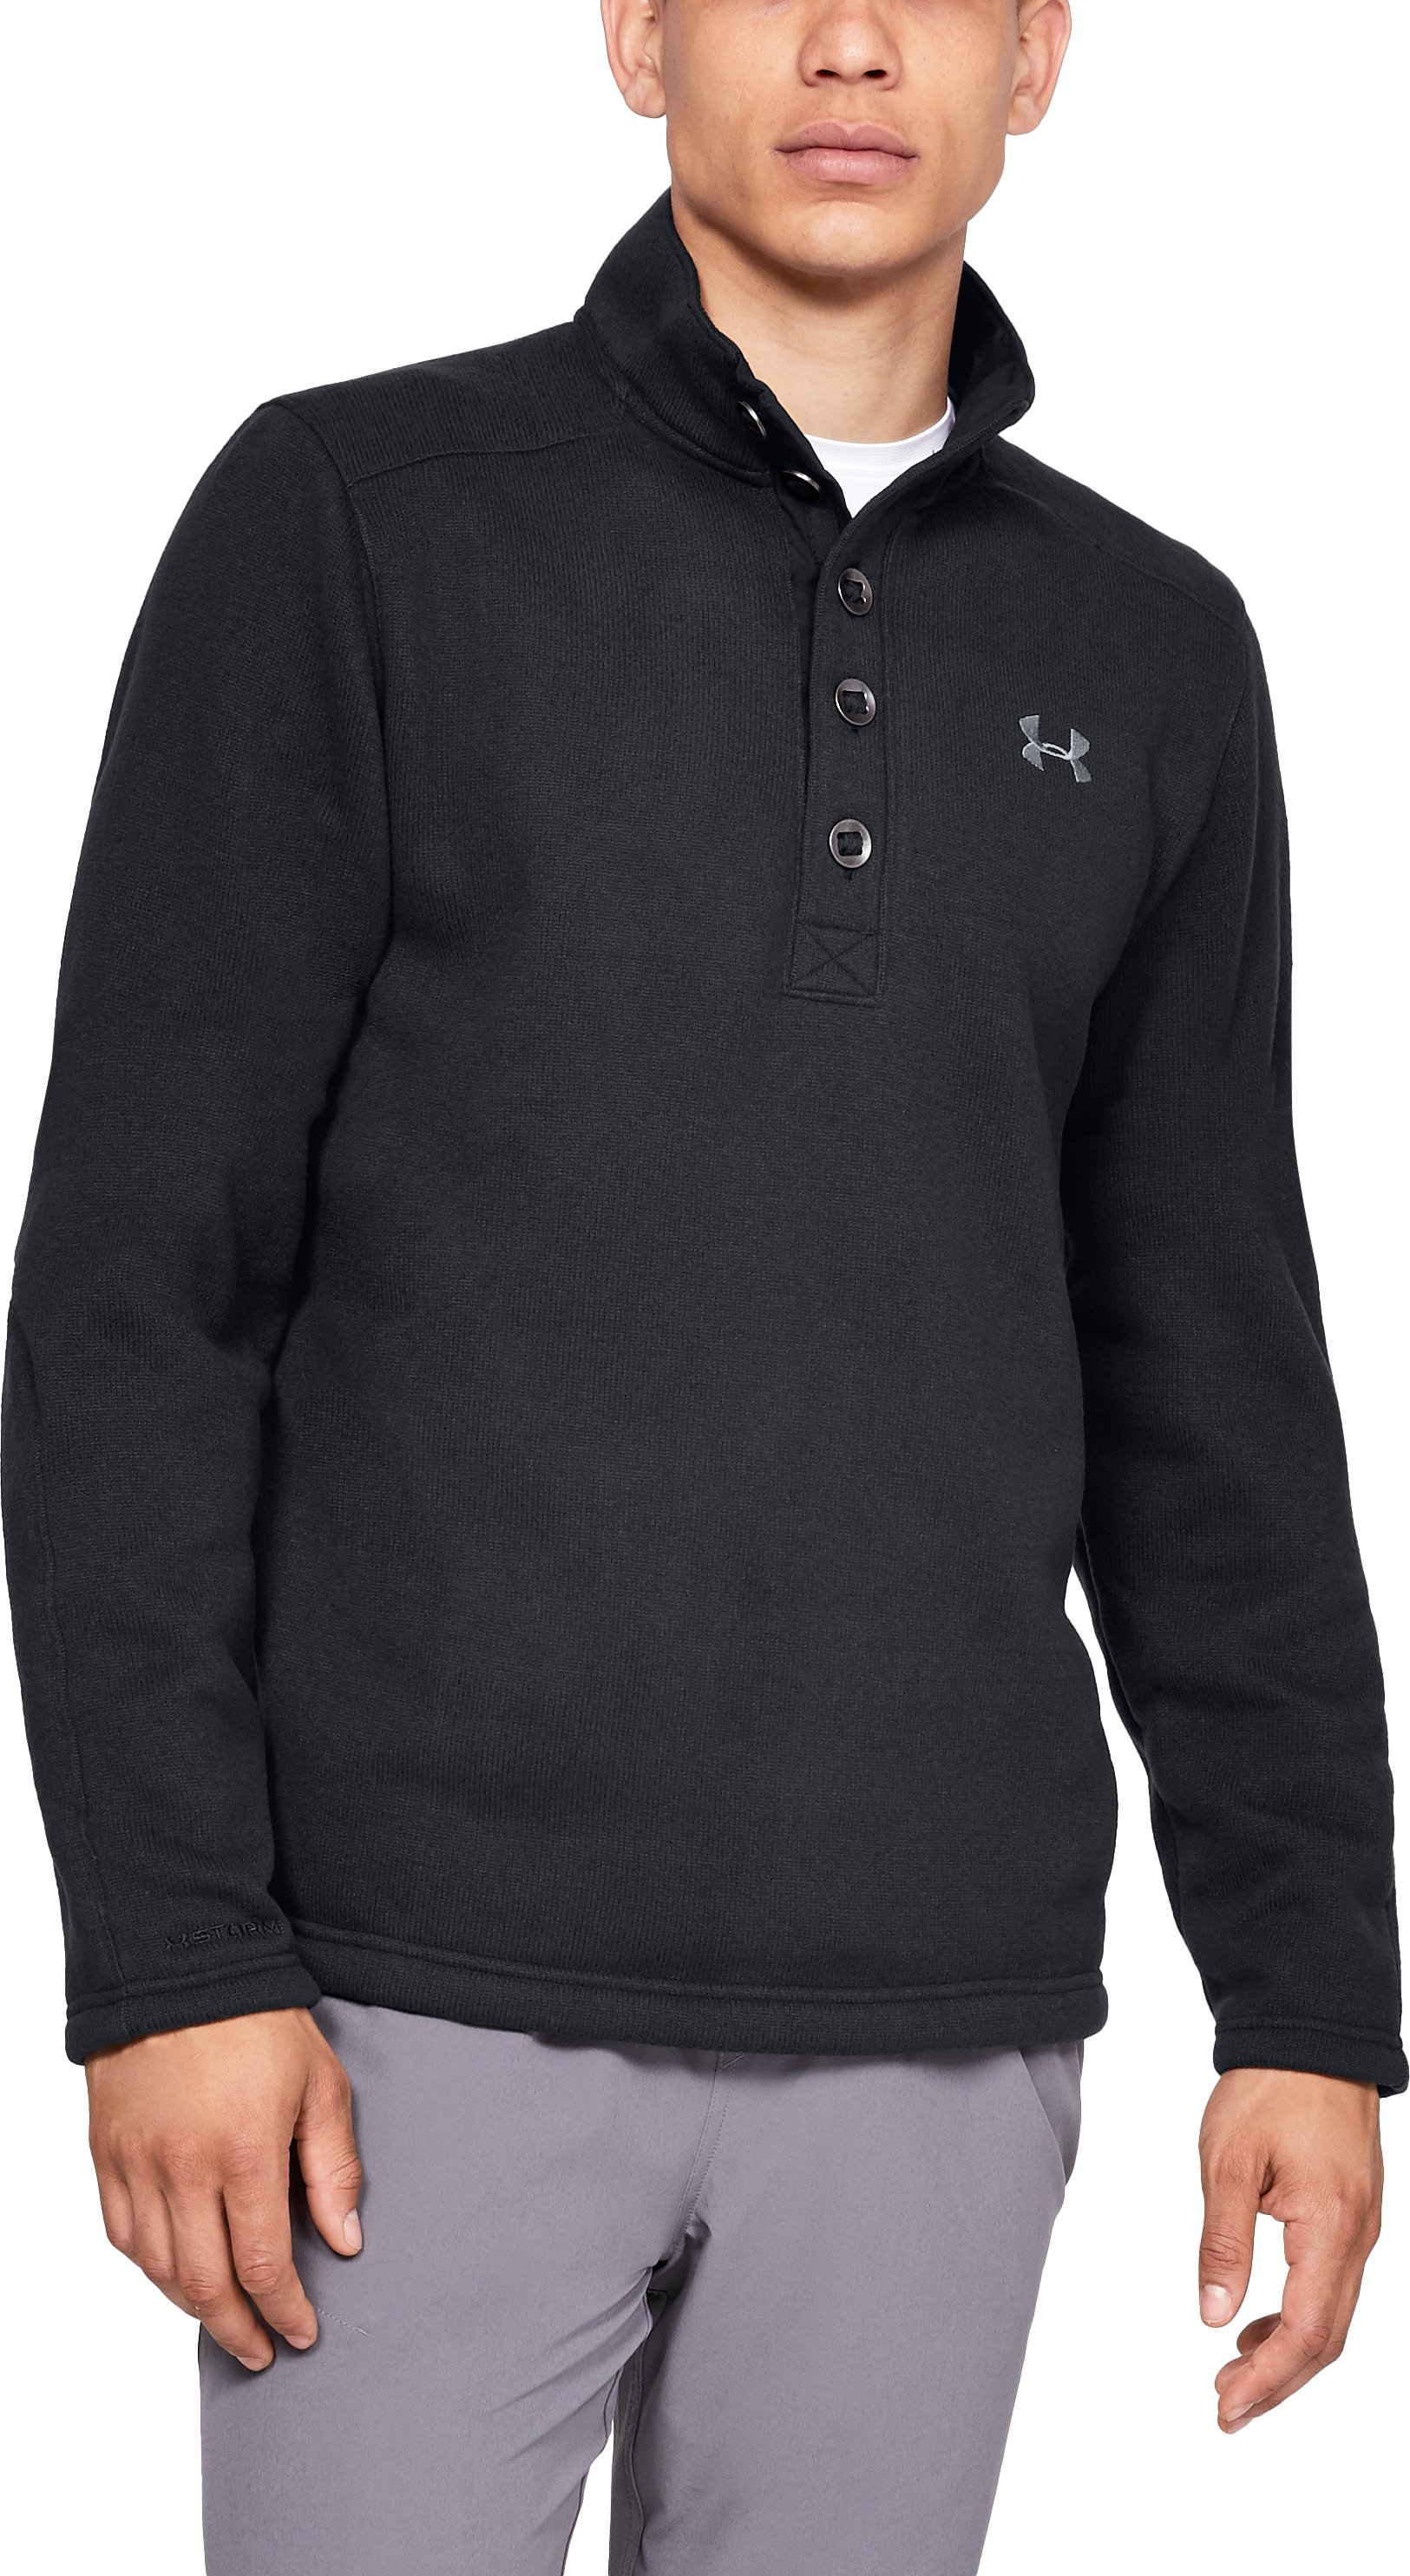 small sweaters Men's UA Storm Specialist Sweater This sweater is amazing....Love the sweater...I really like the sweater.